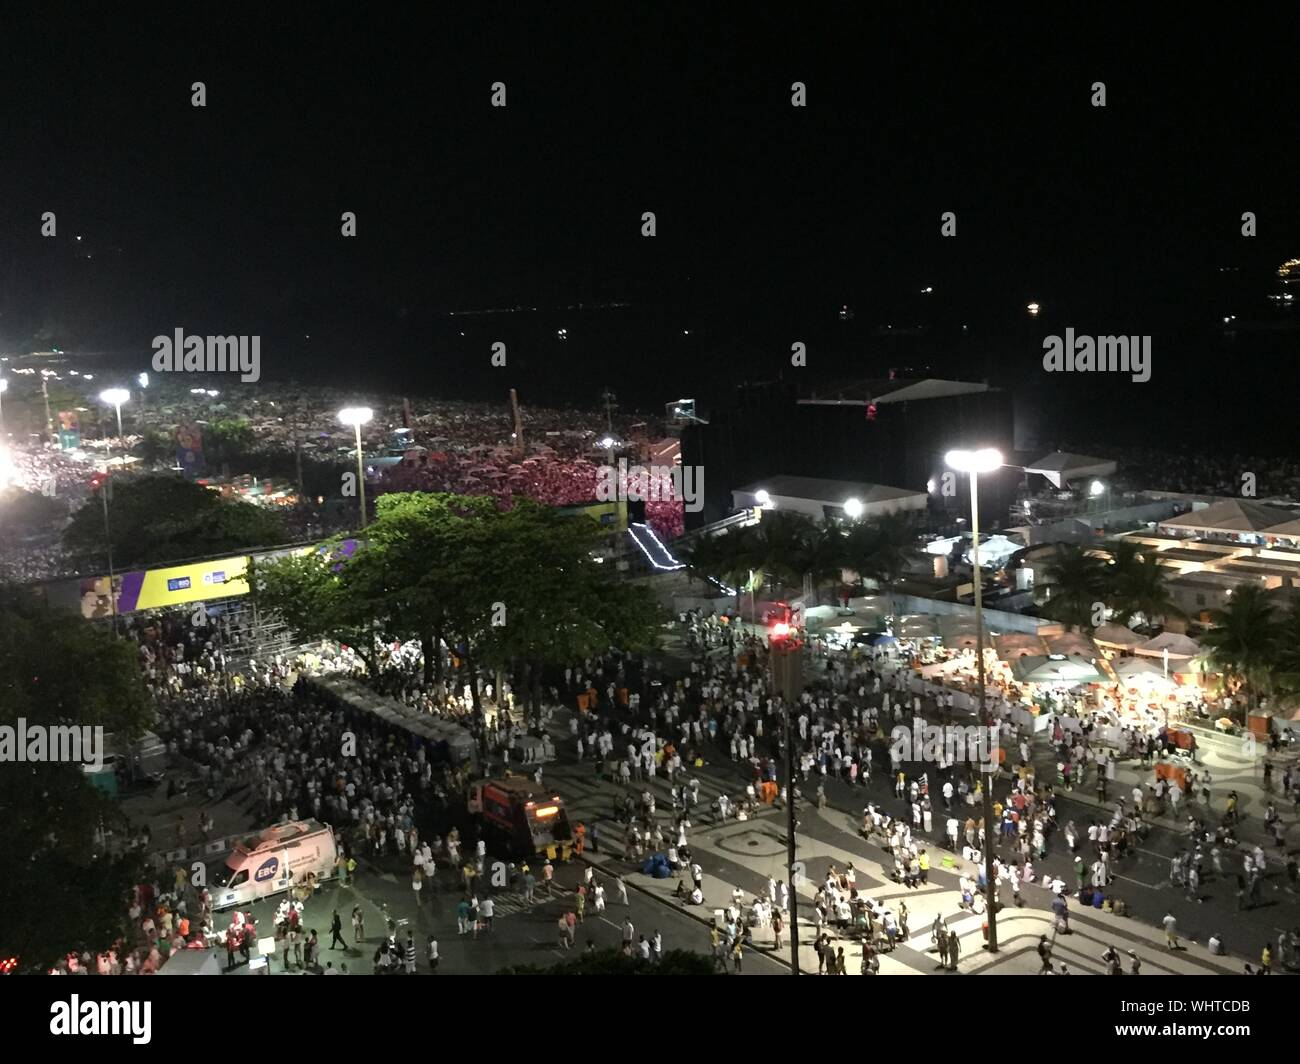 High Angle View Of Crowd Gathered On Street At Night Stock Photo